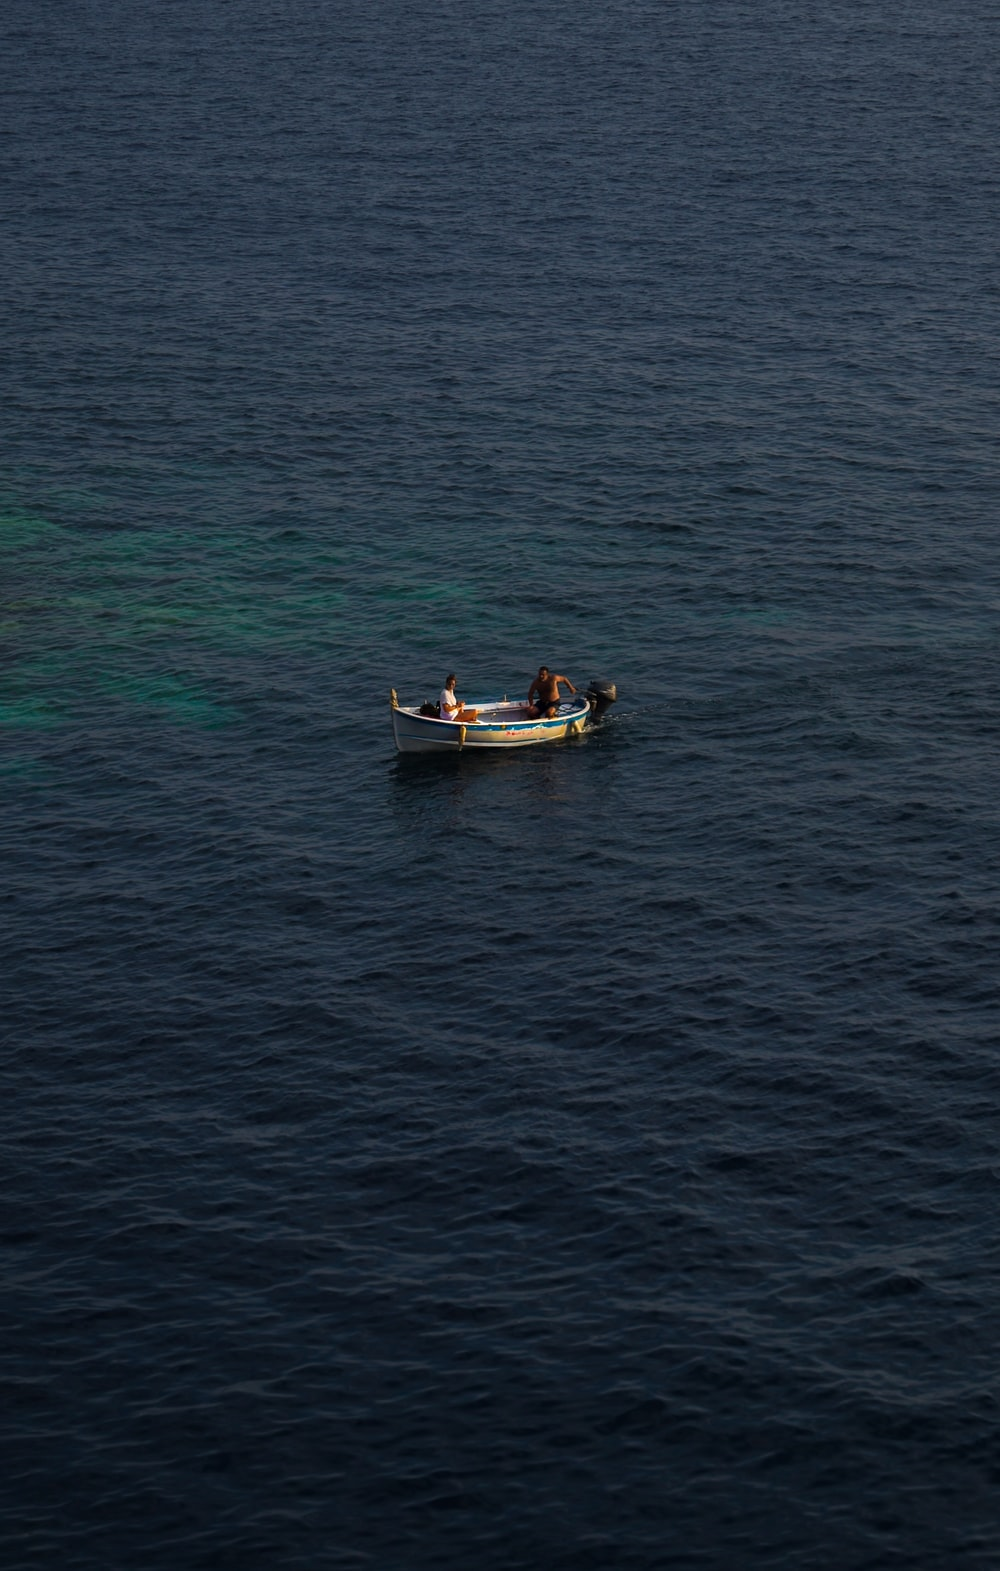 2 people riding on boat on sea during daytime